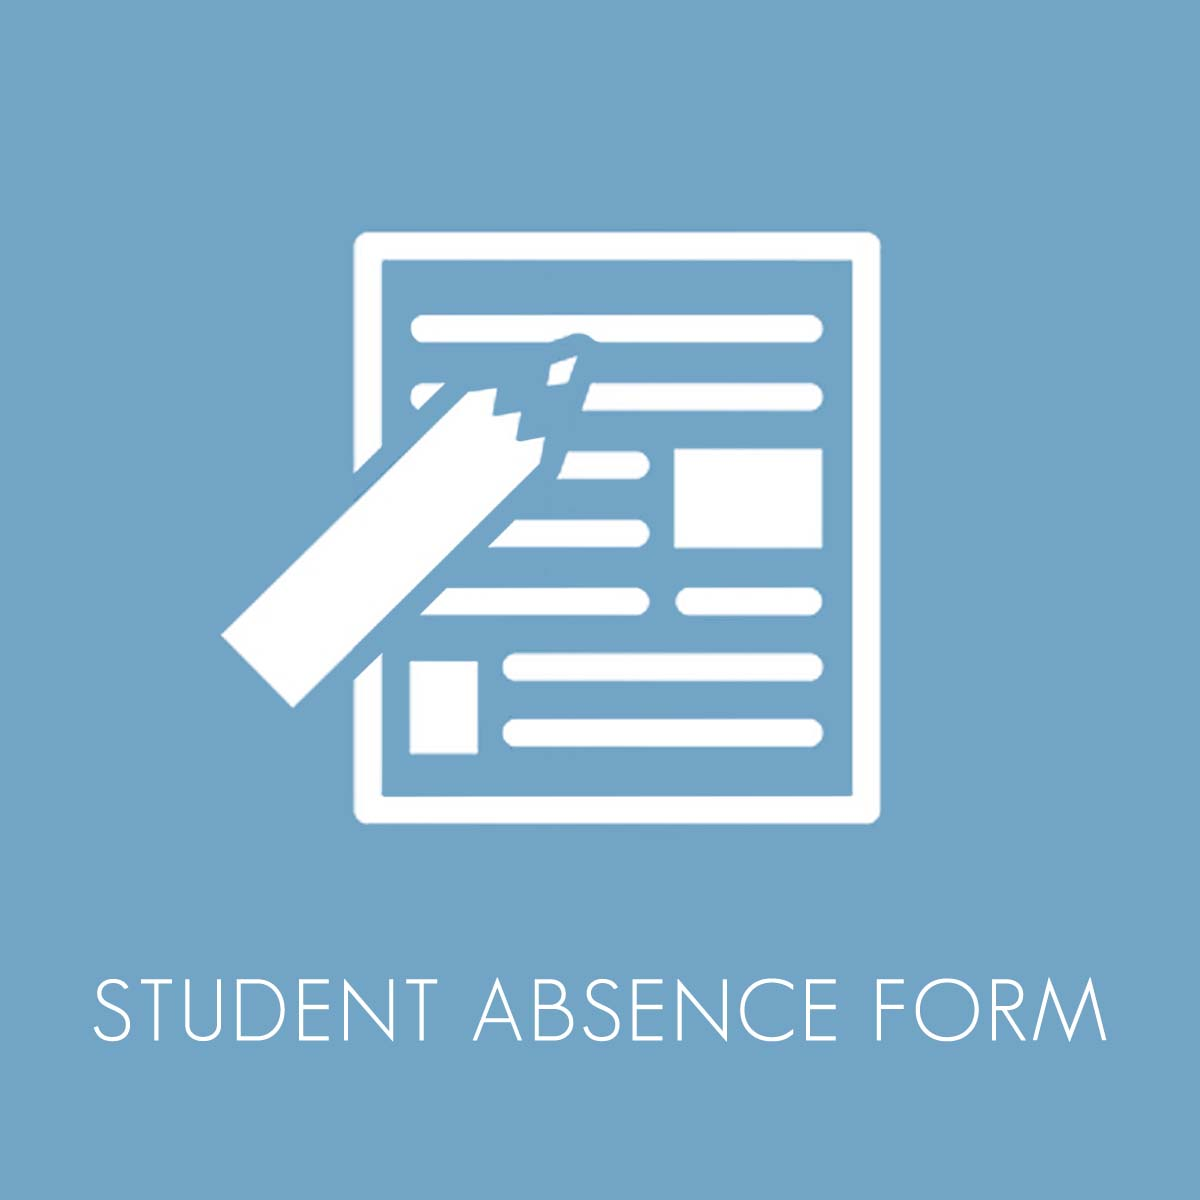 Copy of Student Absence Form